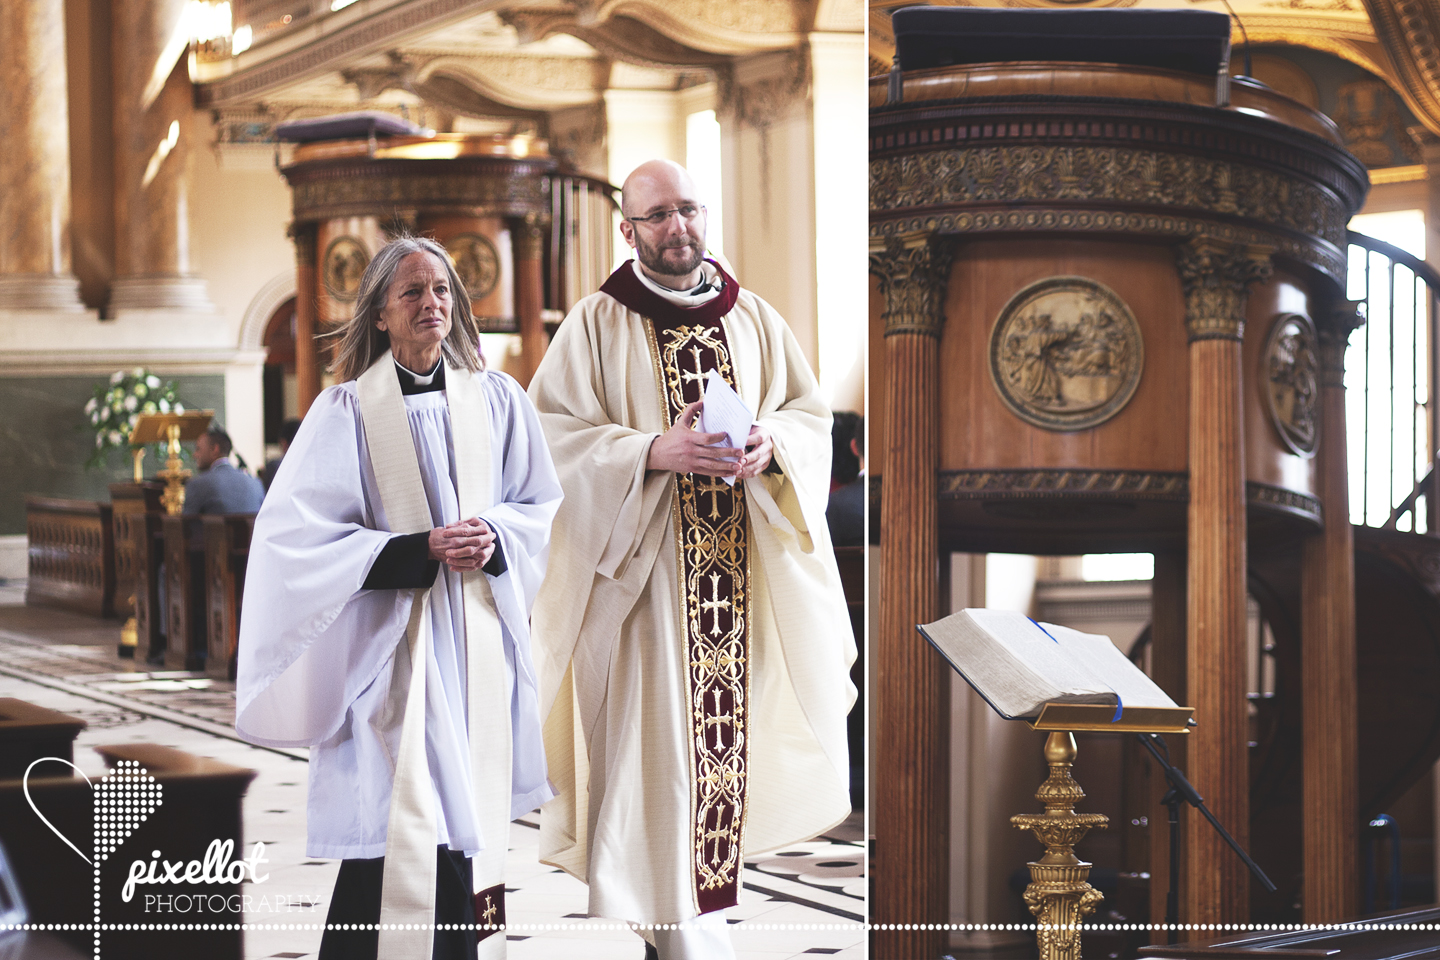 priest-wedding-church-ceremony-london